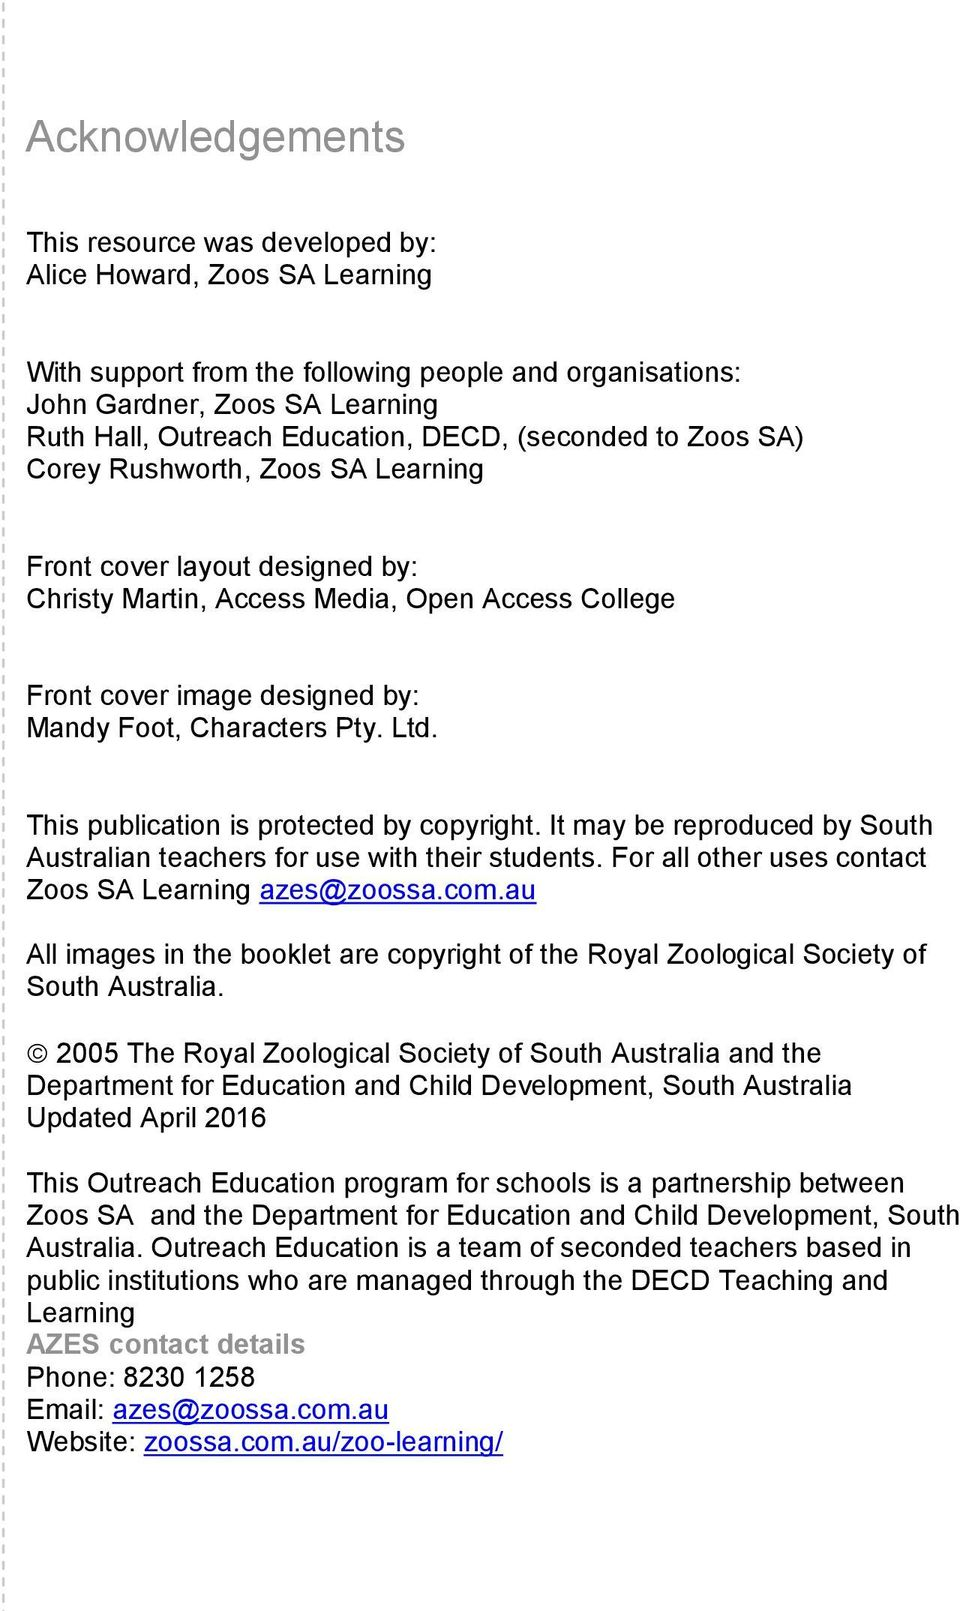 Pty. Ltd. This publication is protected by copyright. It may be reproduced by South Australian teachers for use with their students. For all other uses contact Zoos SA Learning azes@zoossa.com.